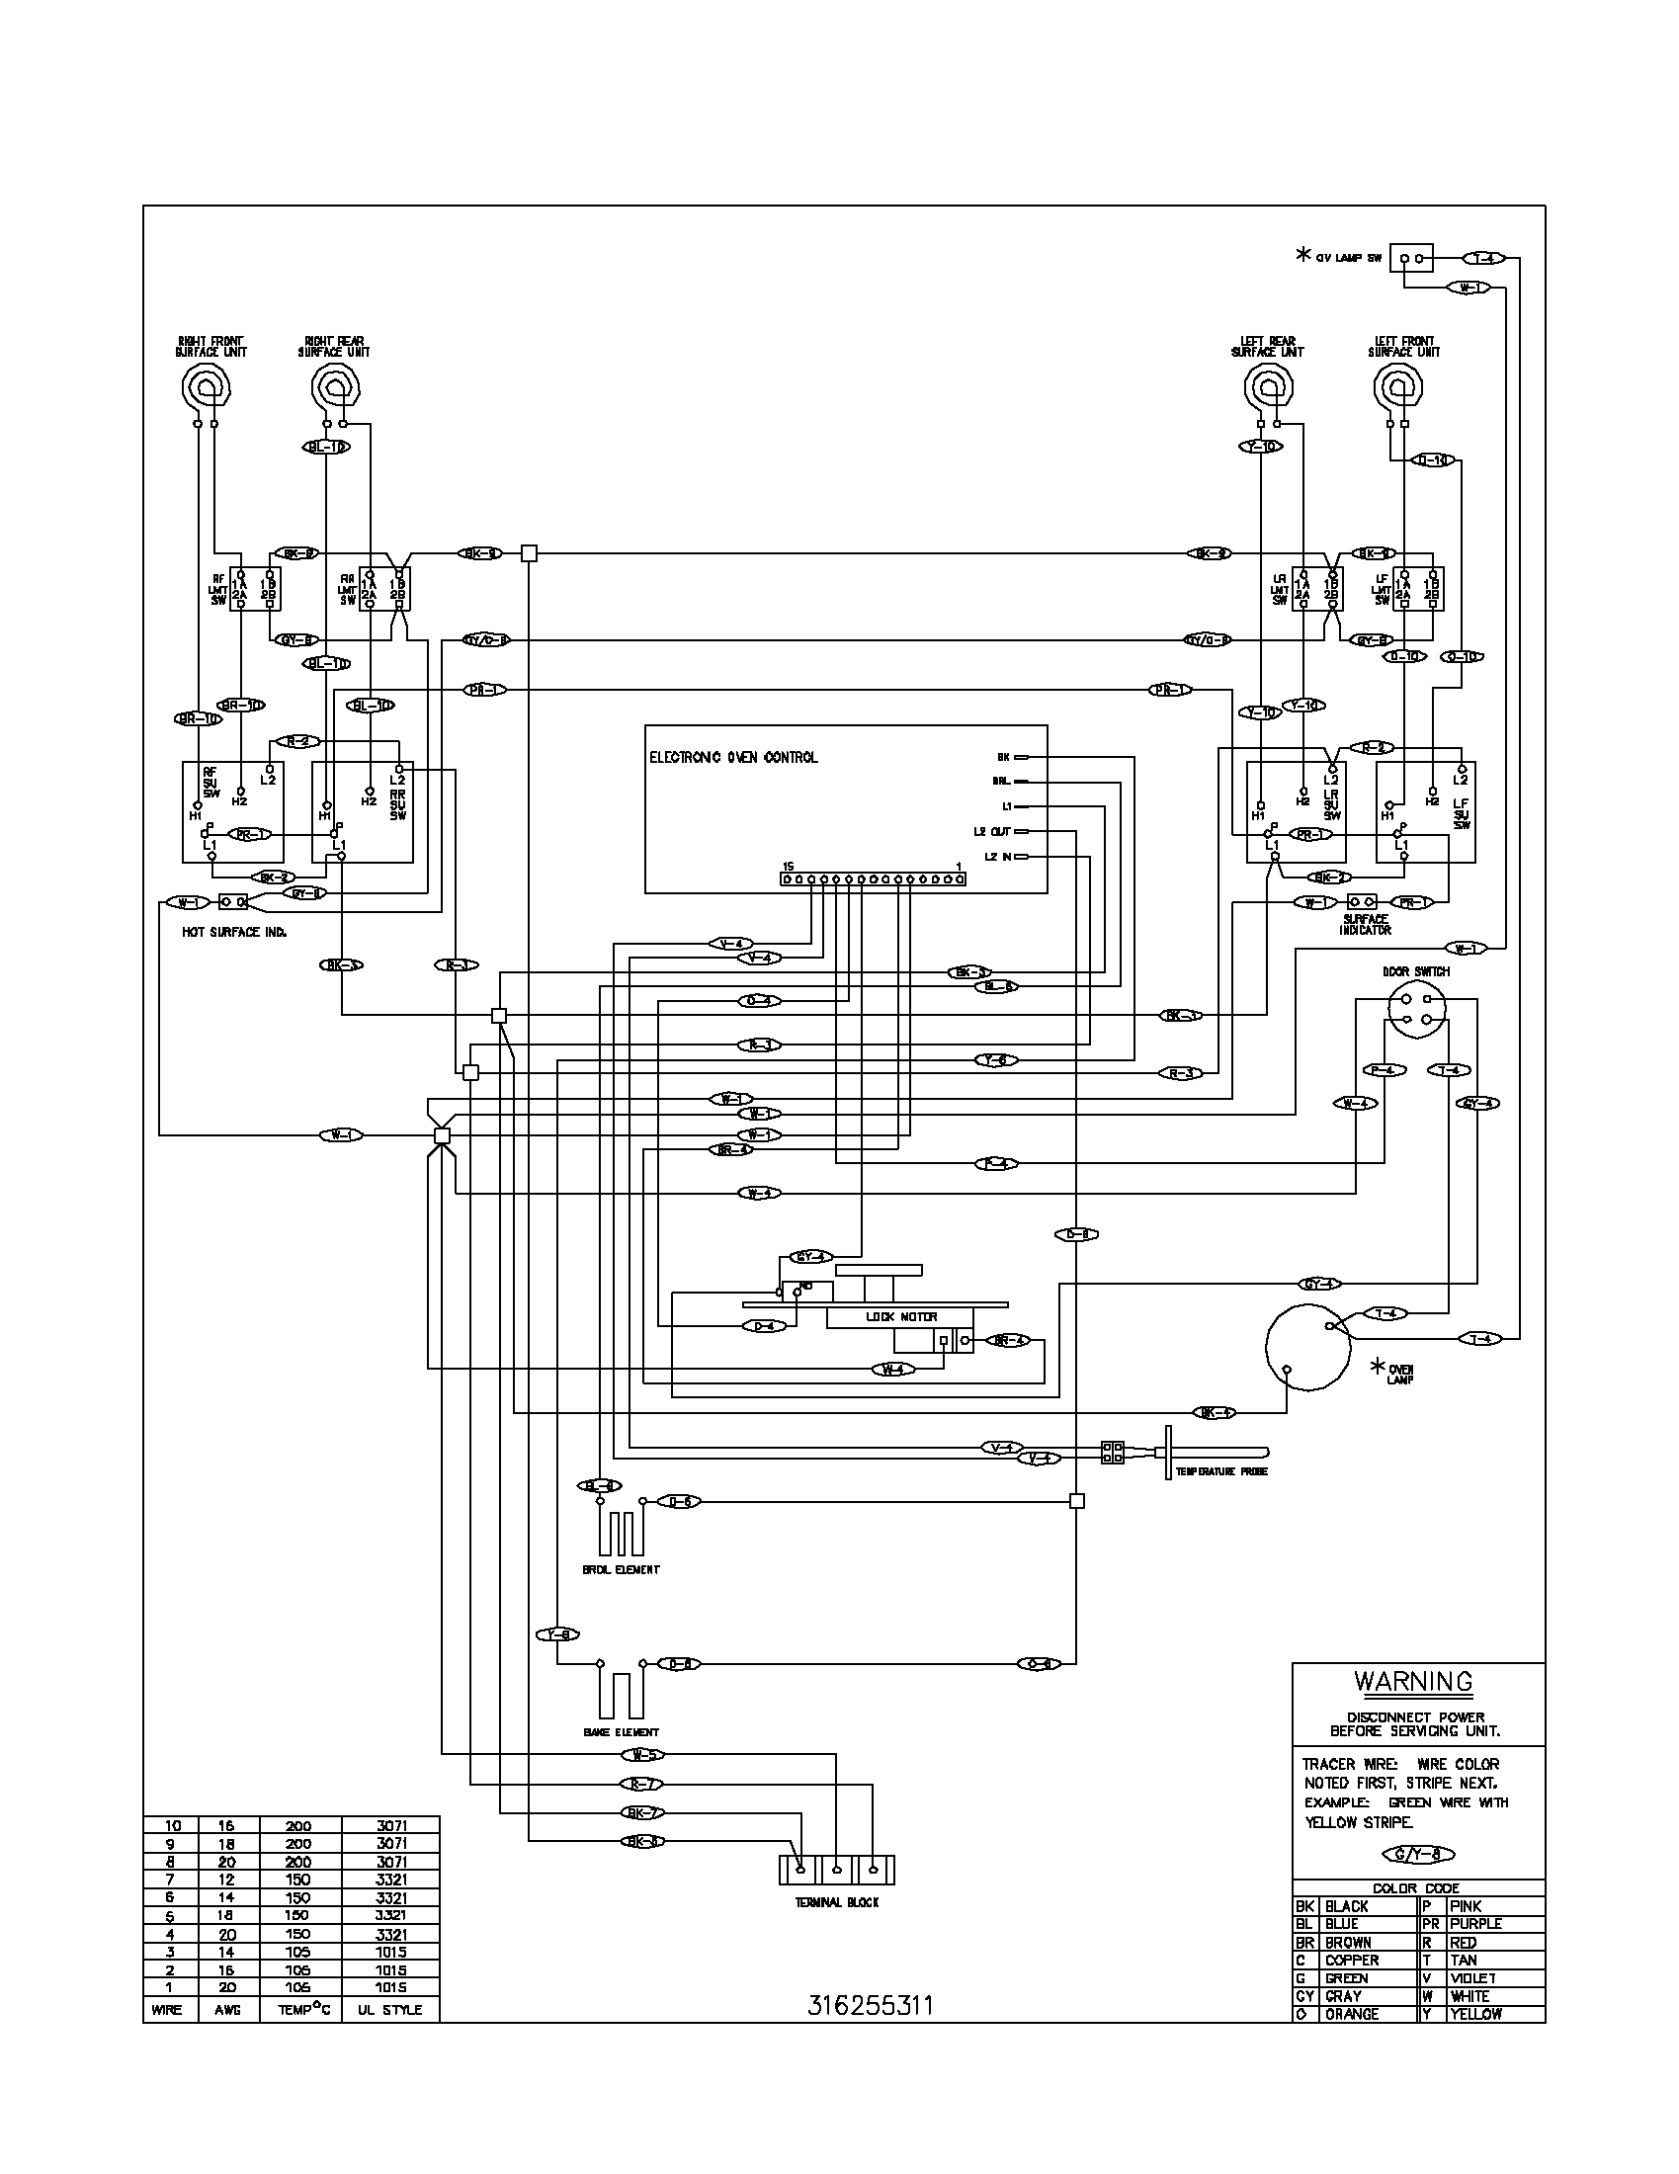 wiring diagram of electric stove wiring image stove wiring diagram wiring diagram on wiring diagram of electric stove